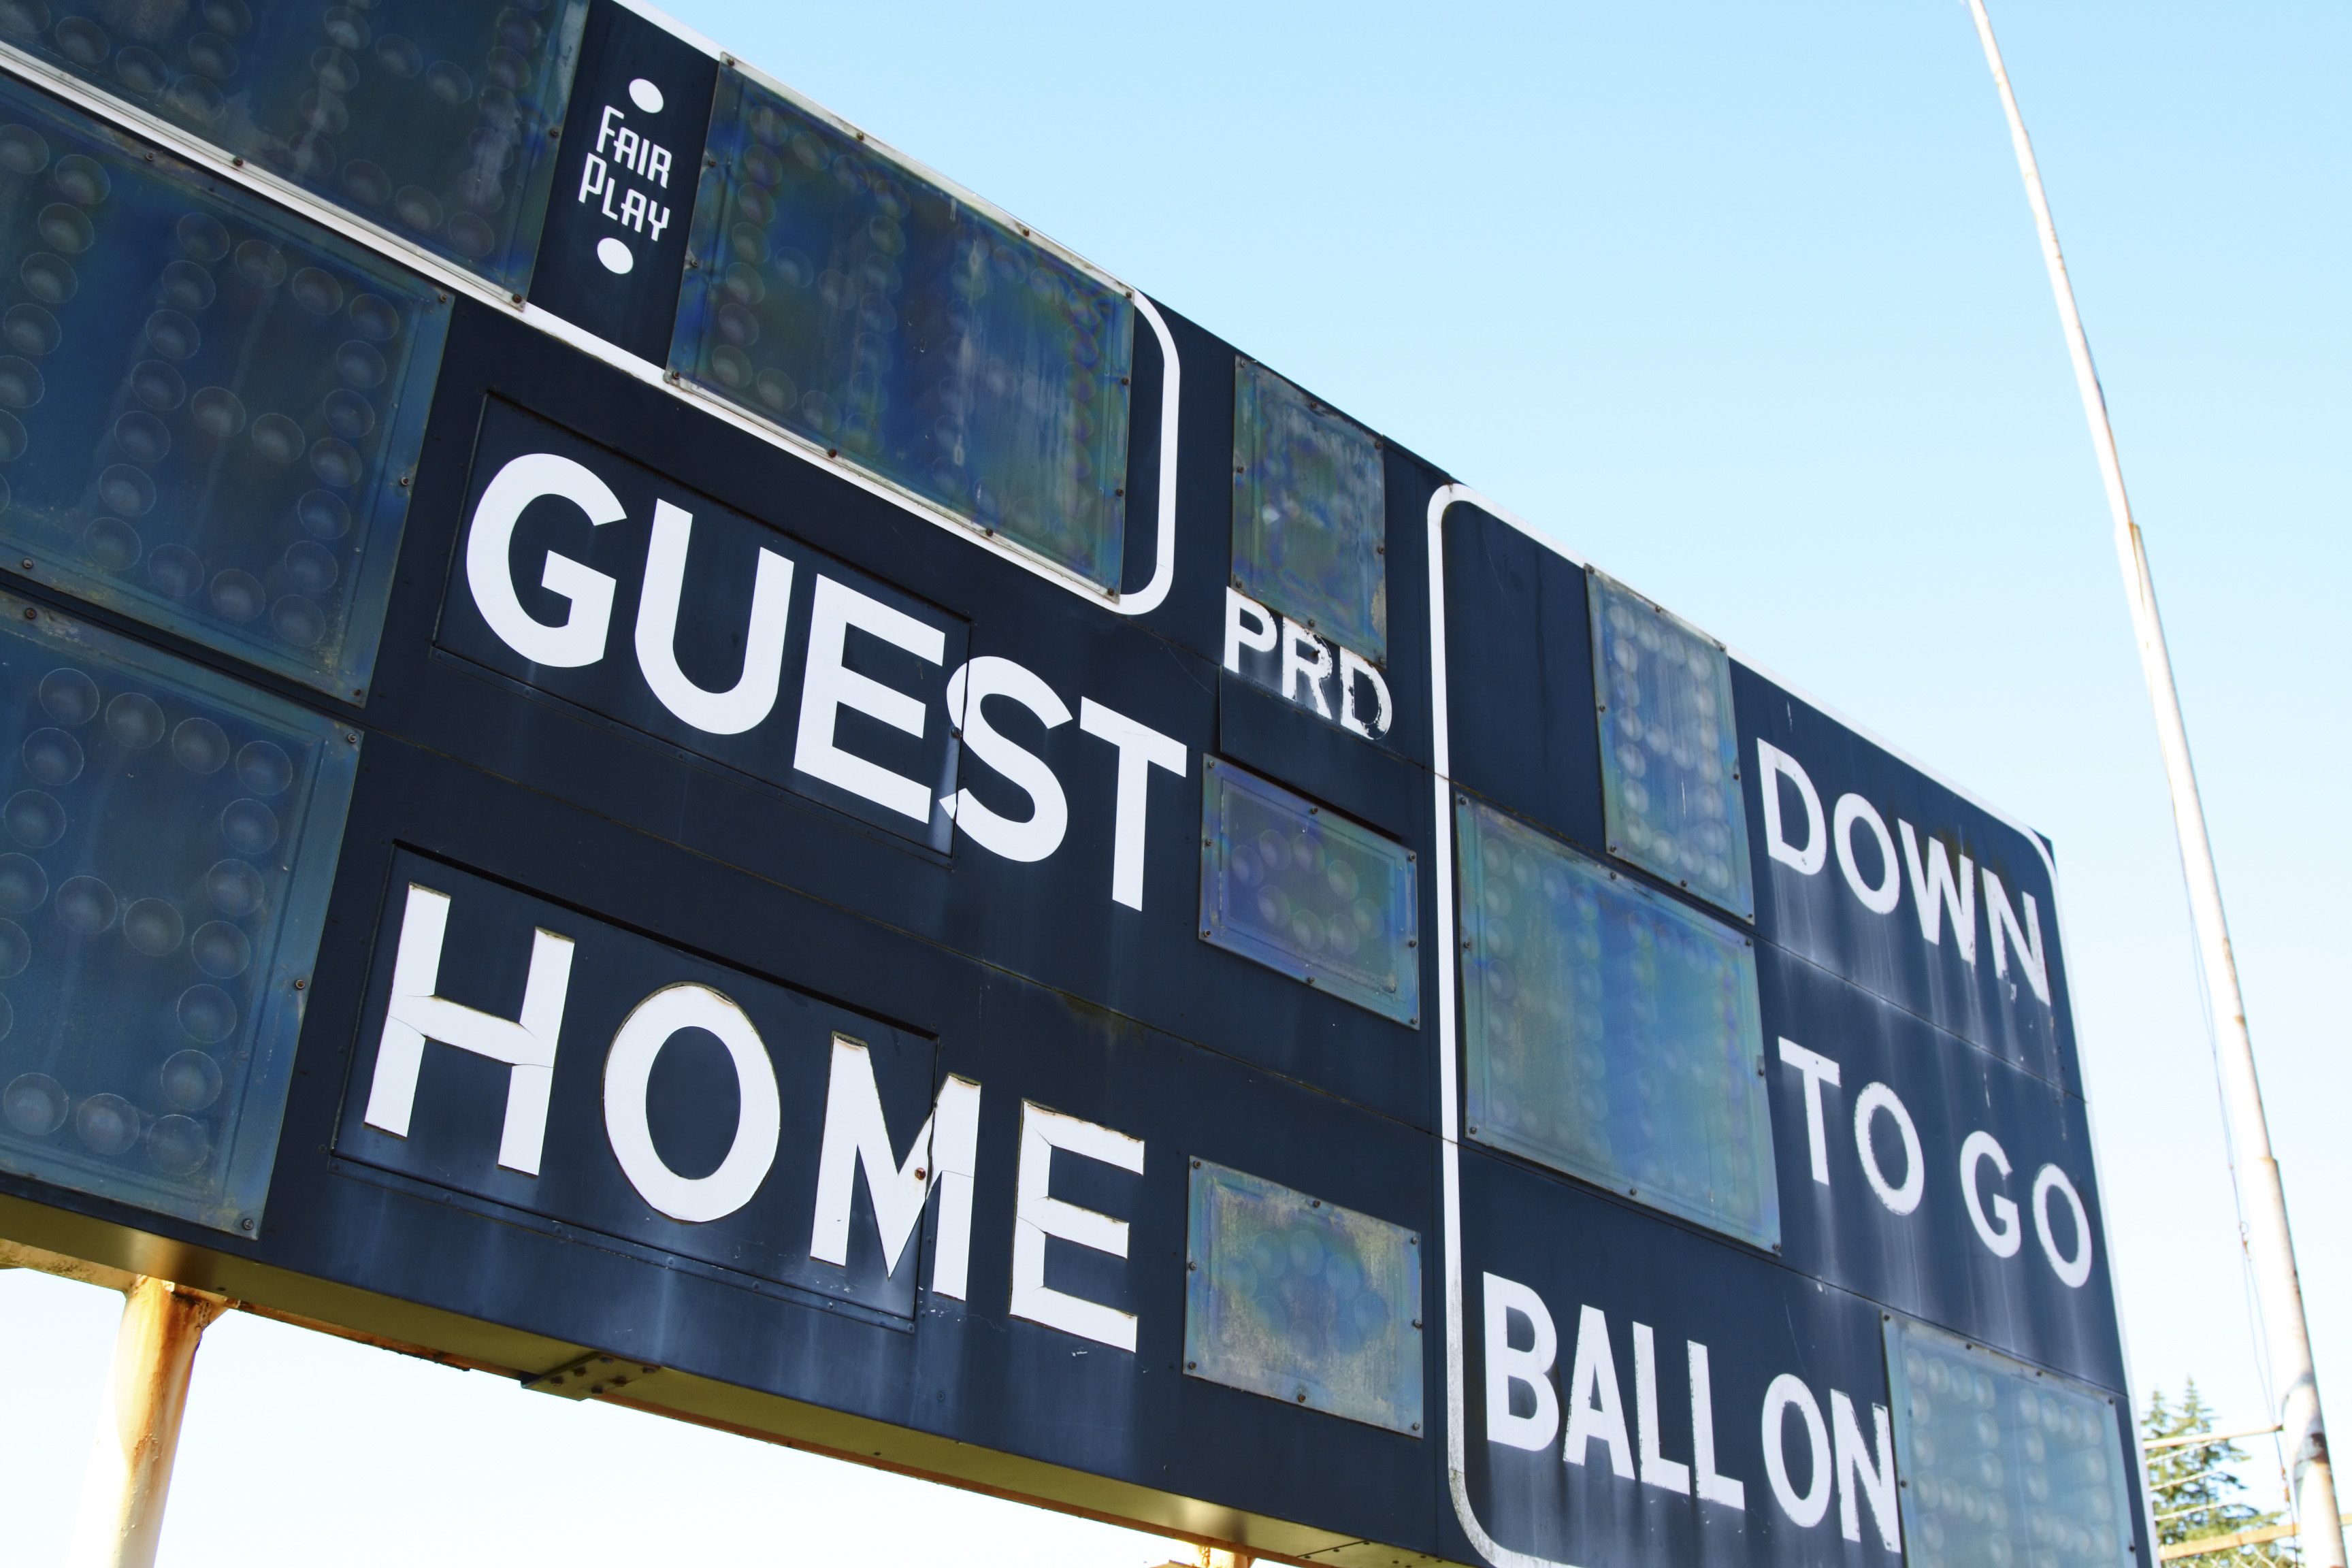 A shot of a score board on a football stadium